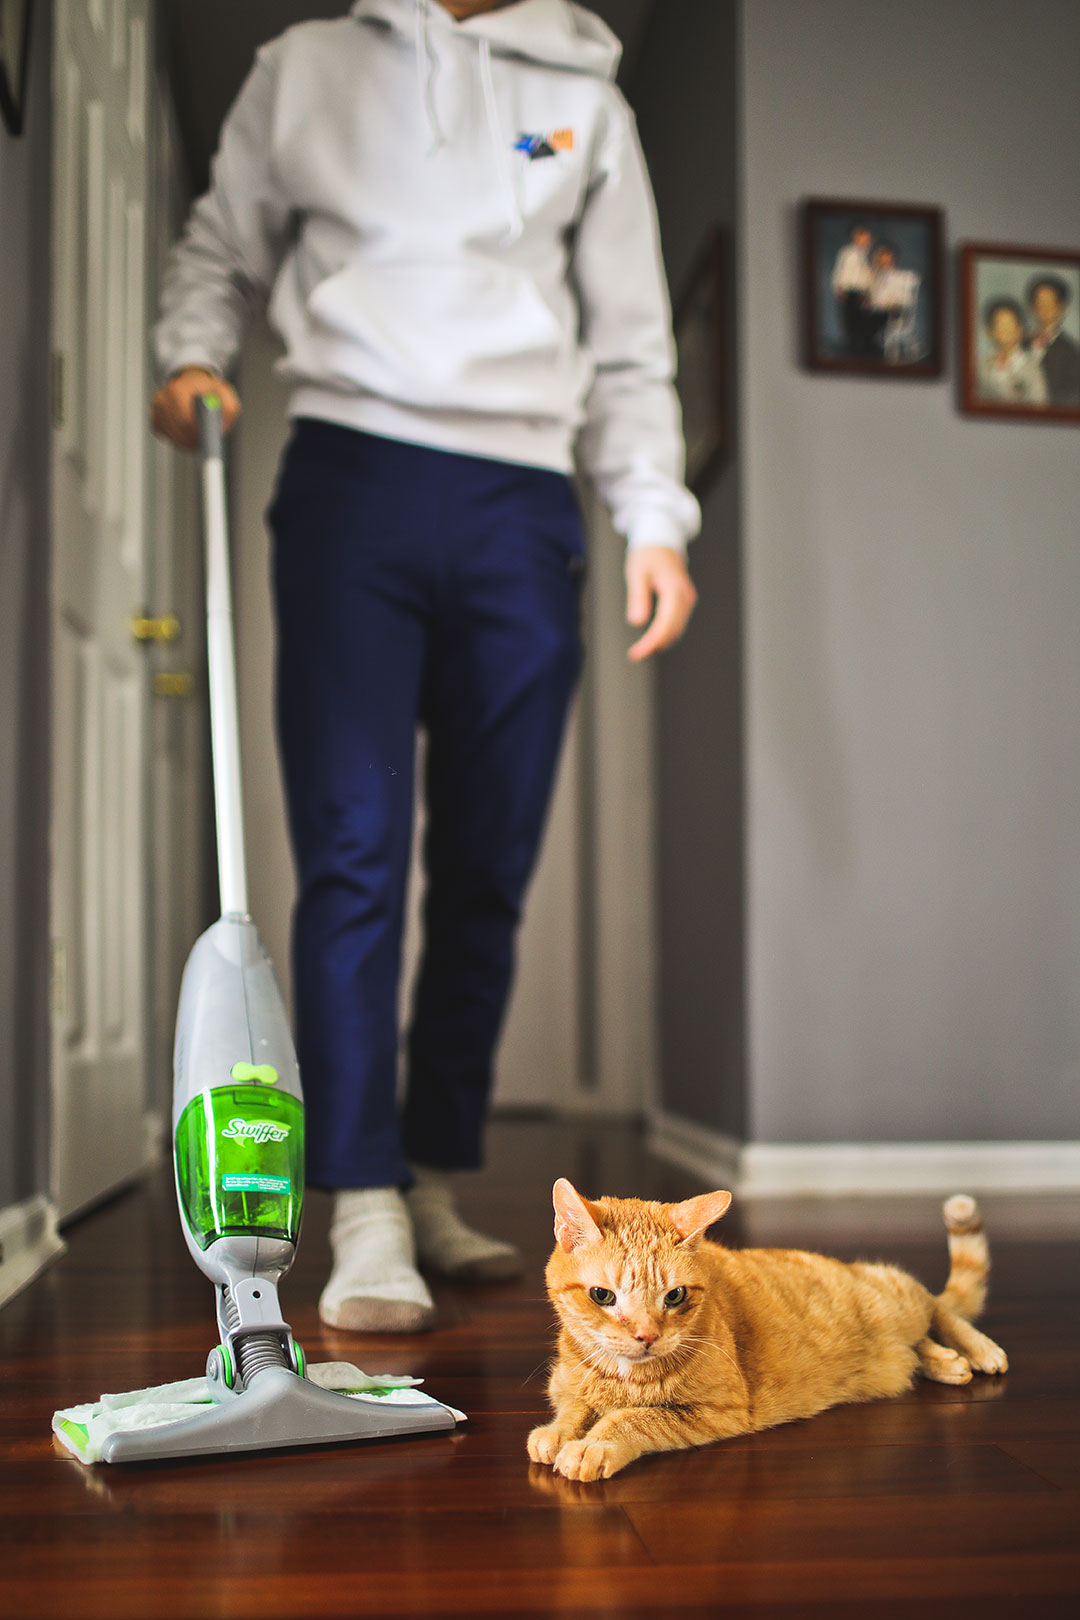 Our Cat Adoption Story + Swiffer Sweeper Refills